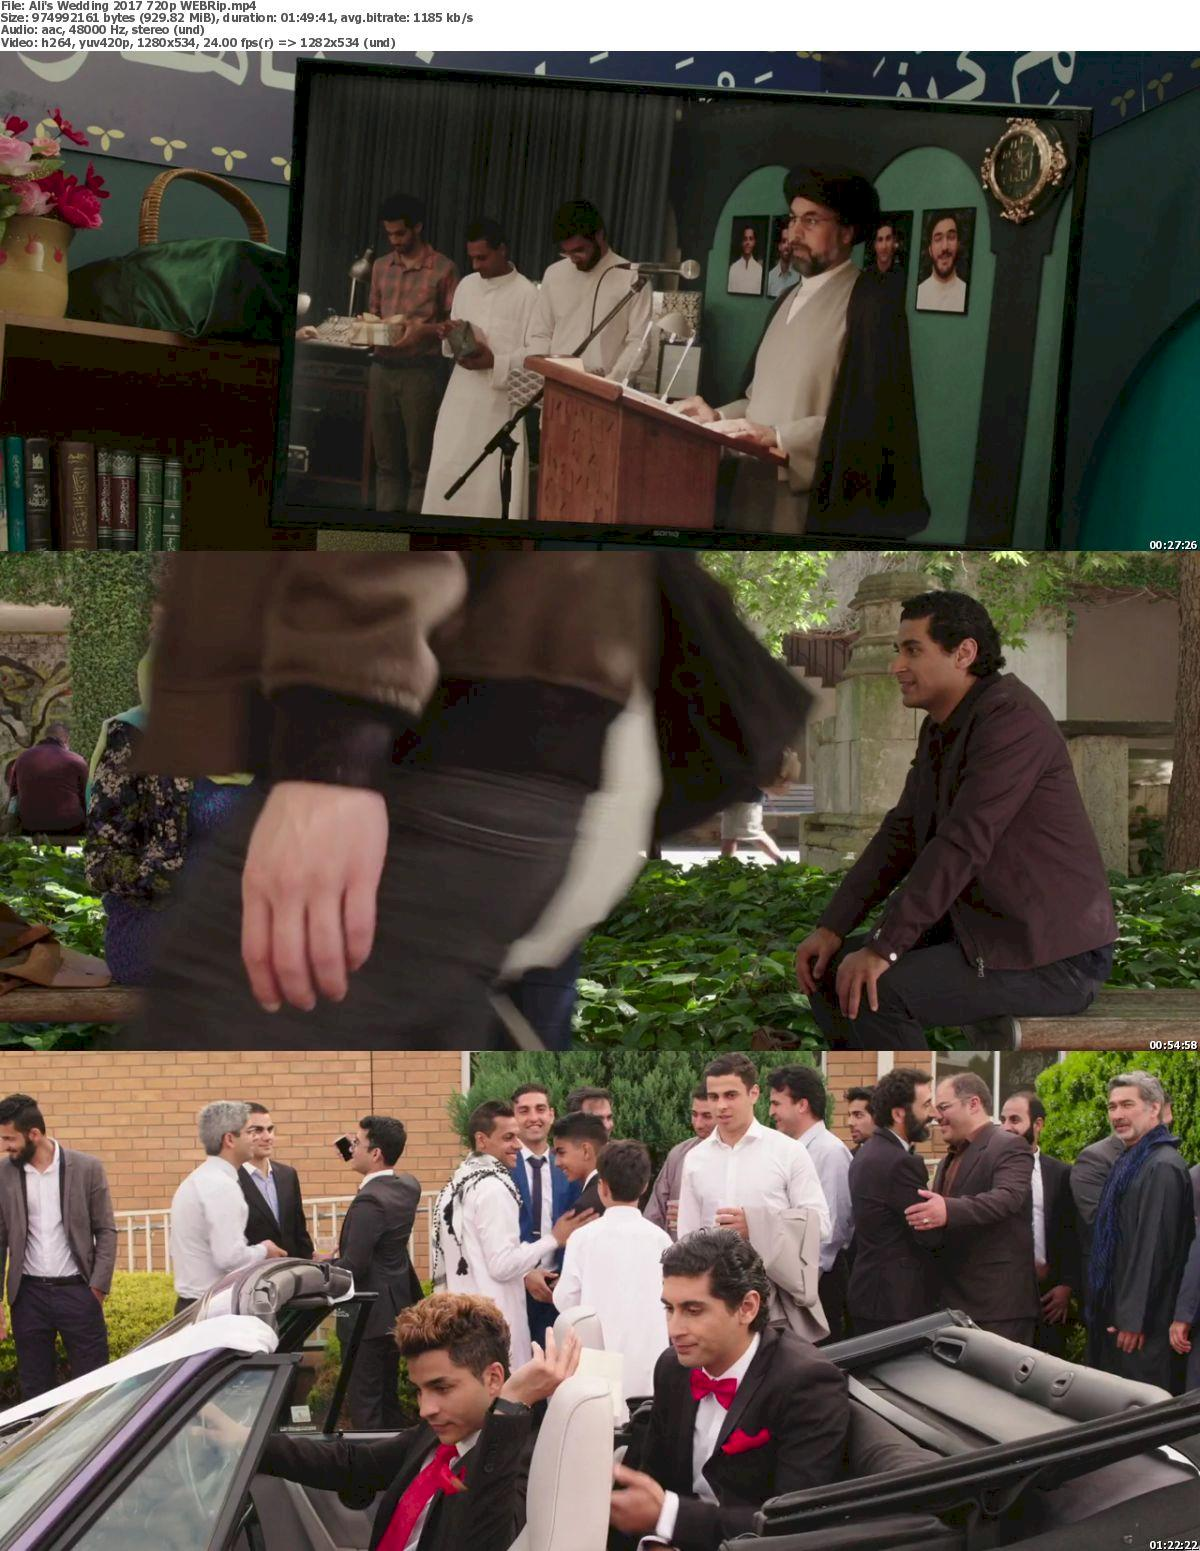 Ali's Wedding (2017) 720p & 1080p Web-Dl Free Download 720p Screenshot